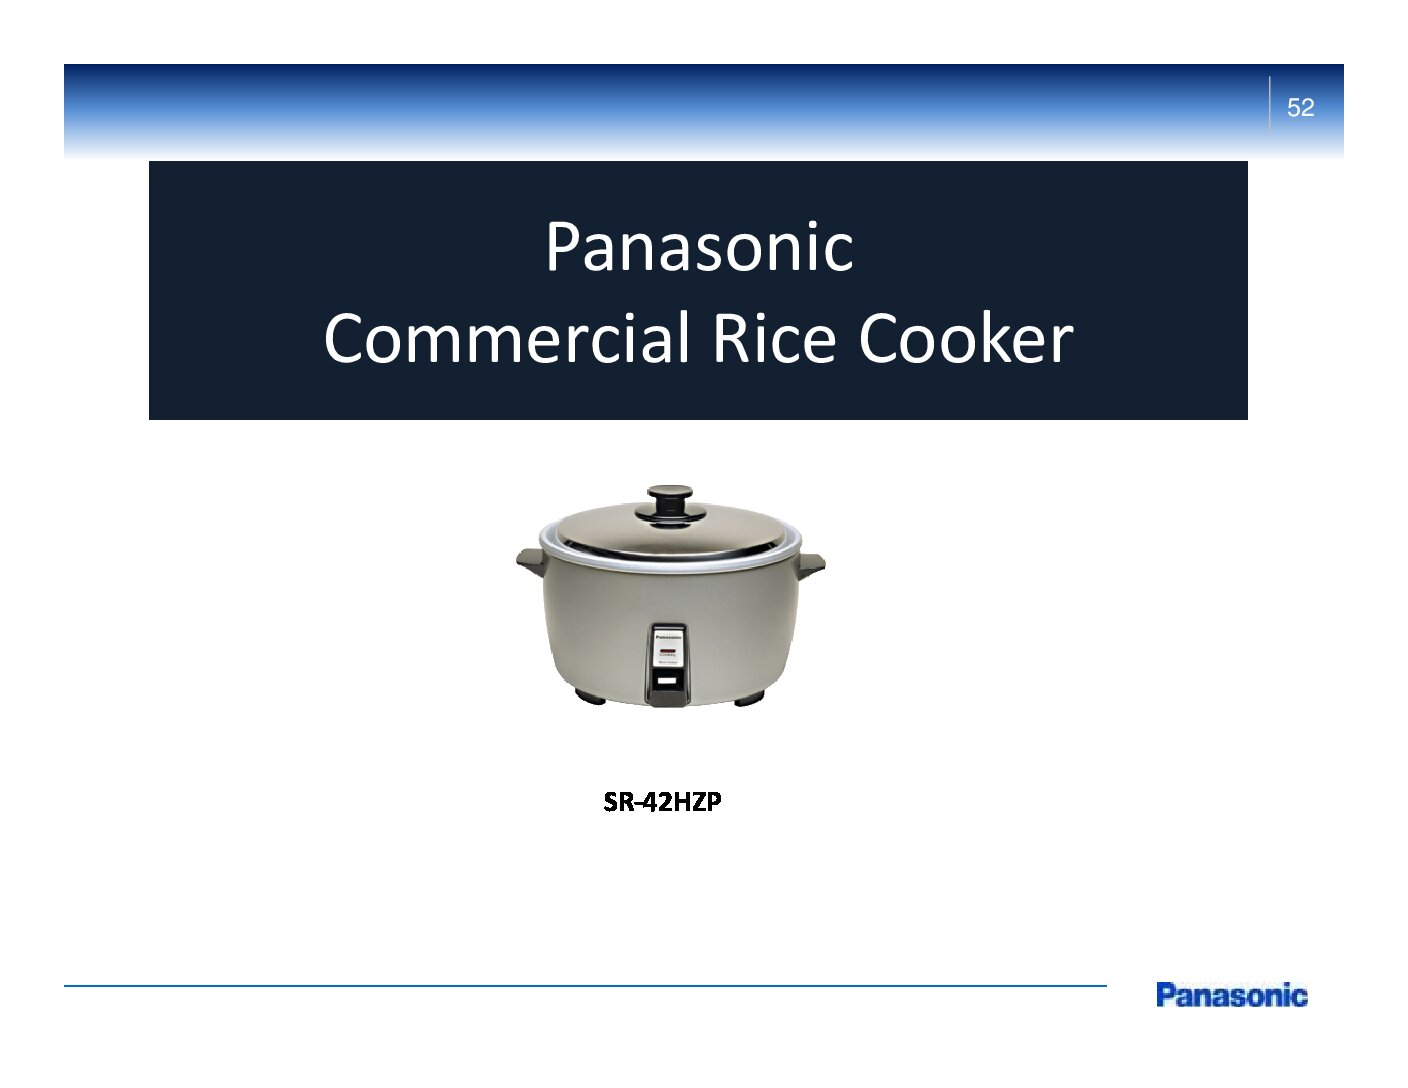 Panasonic Commercial Rice Cooker – SR-42HPZ